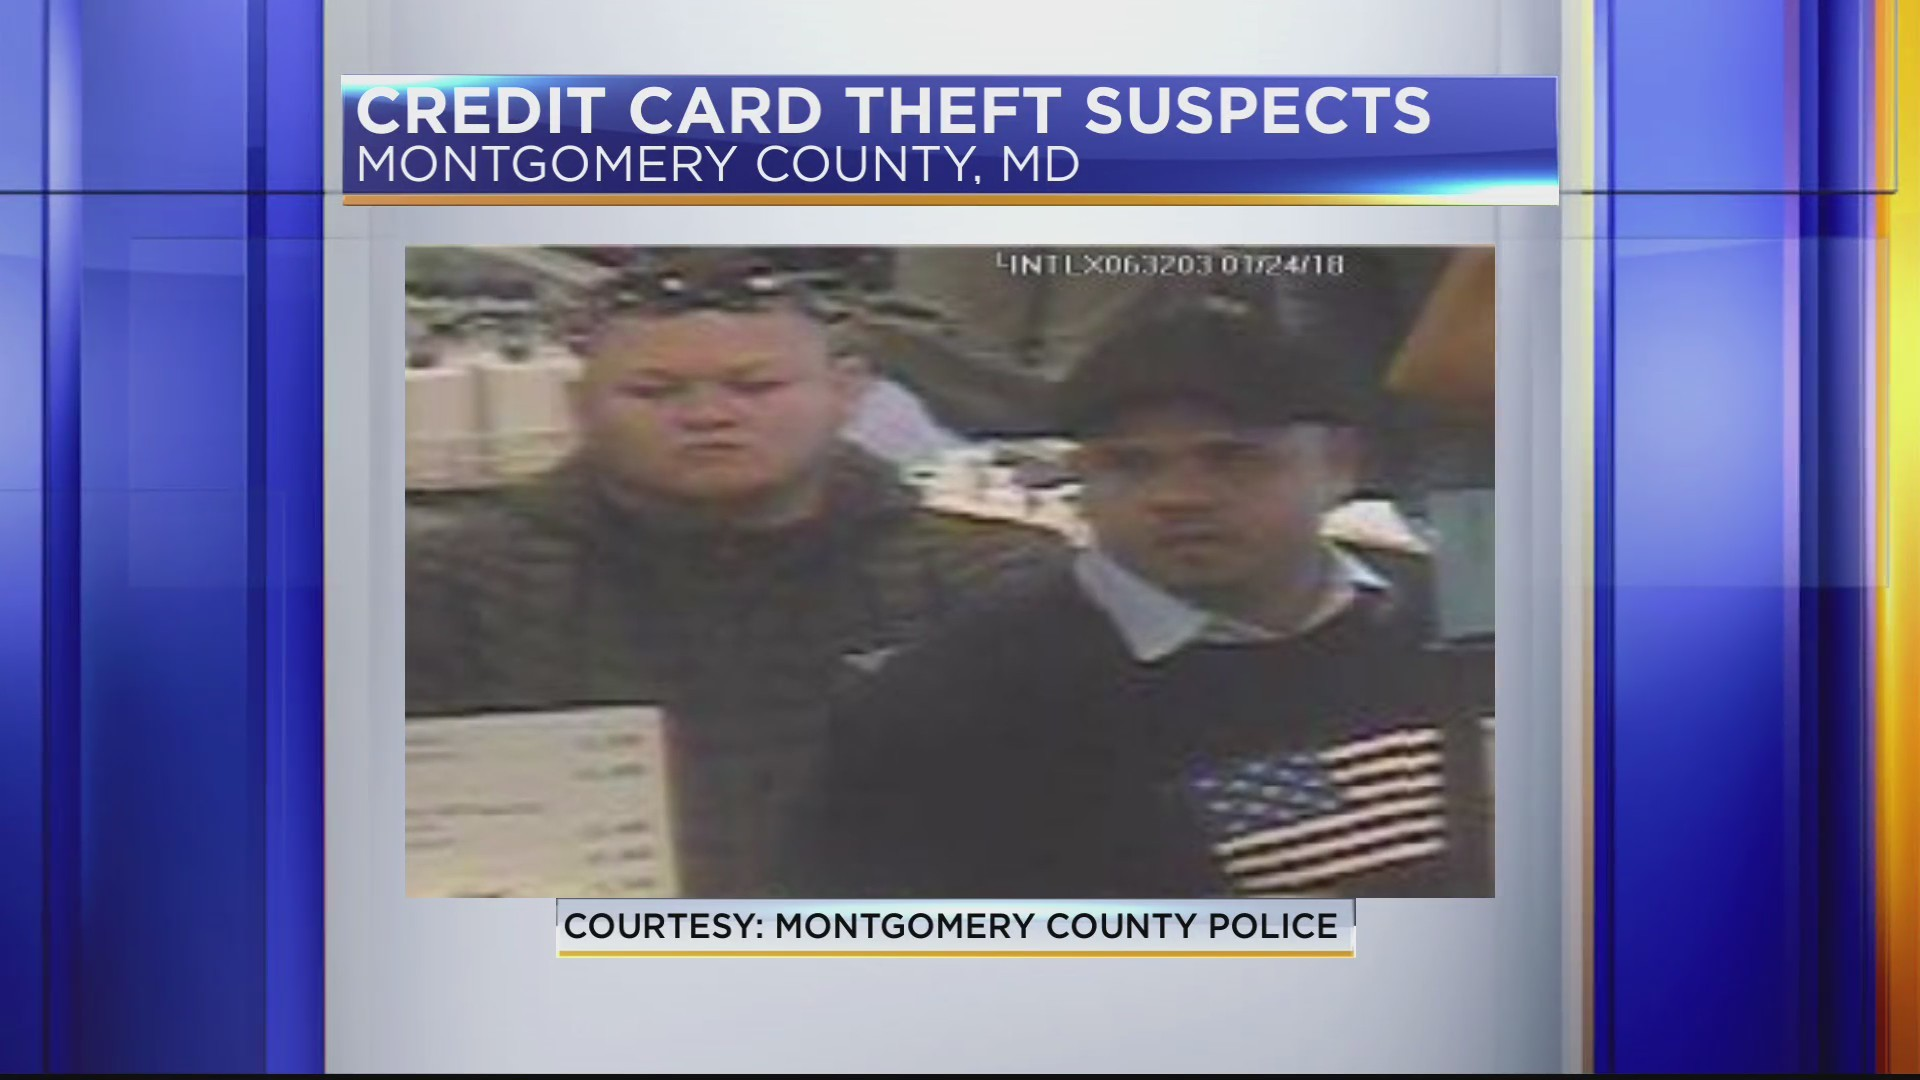 Montgomery County Police ask for public's help to identify